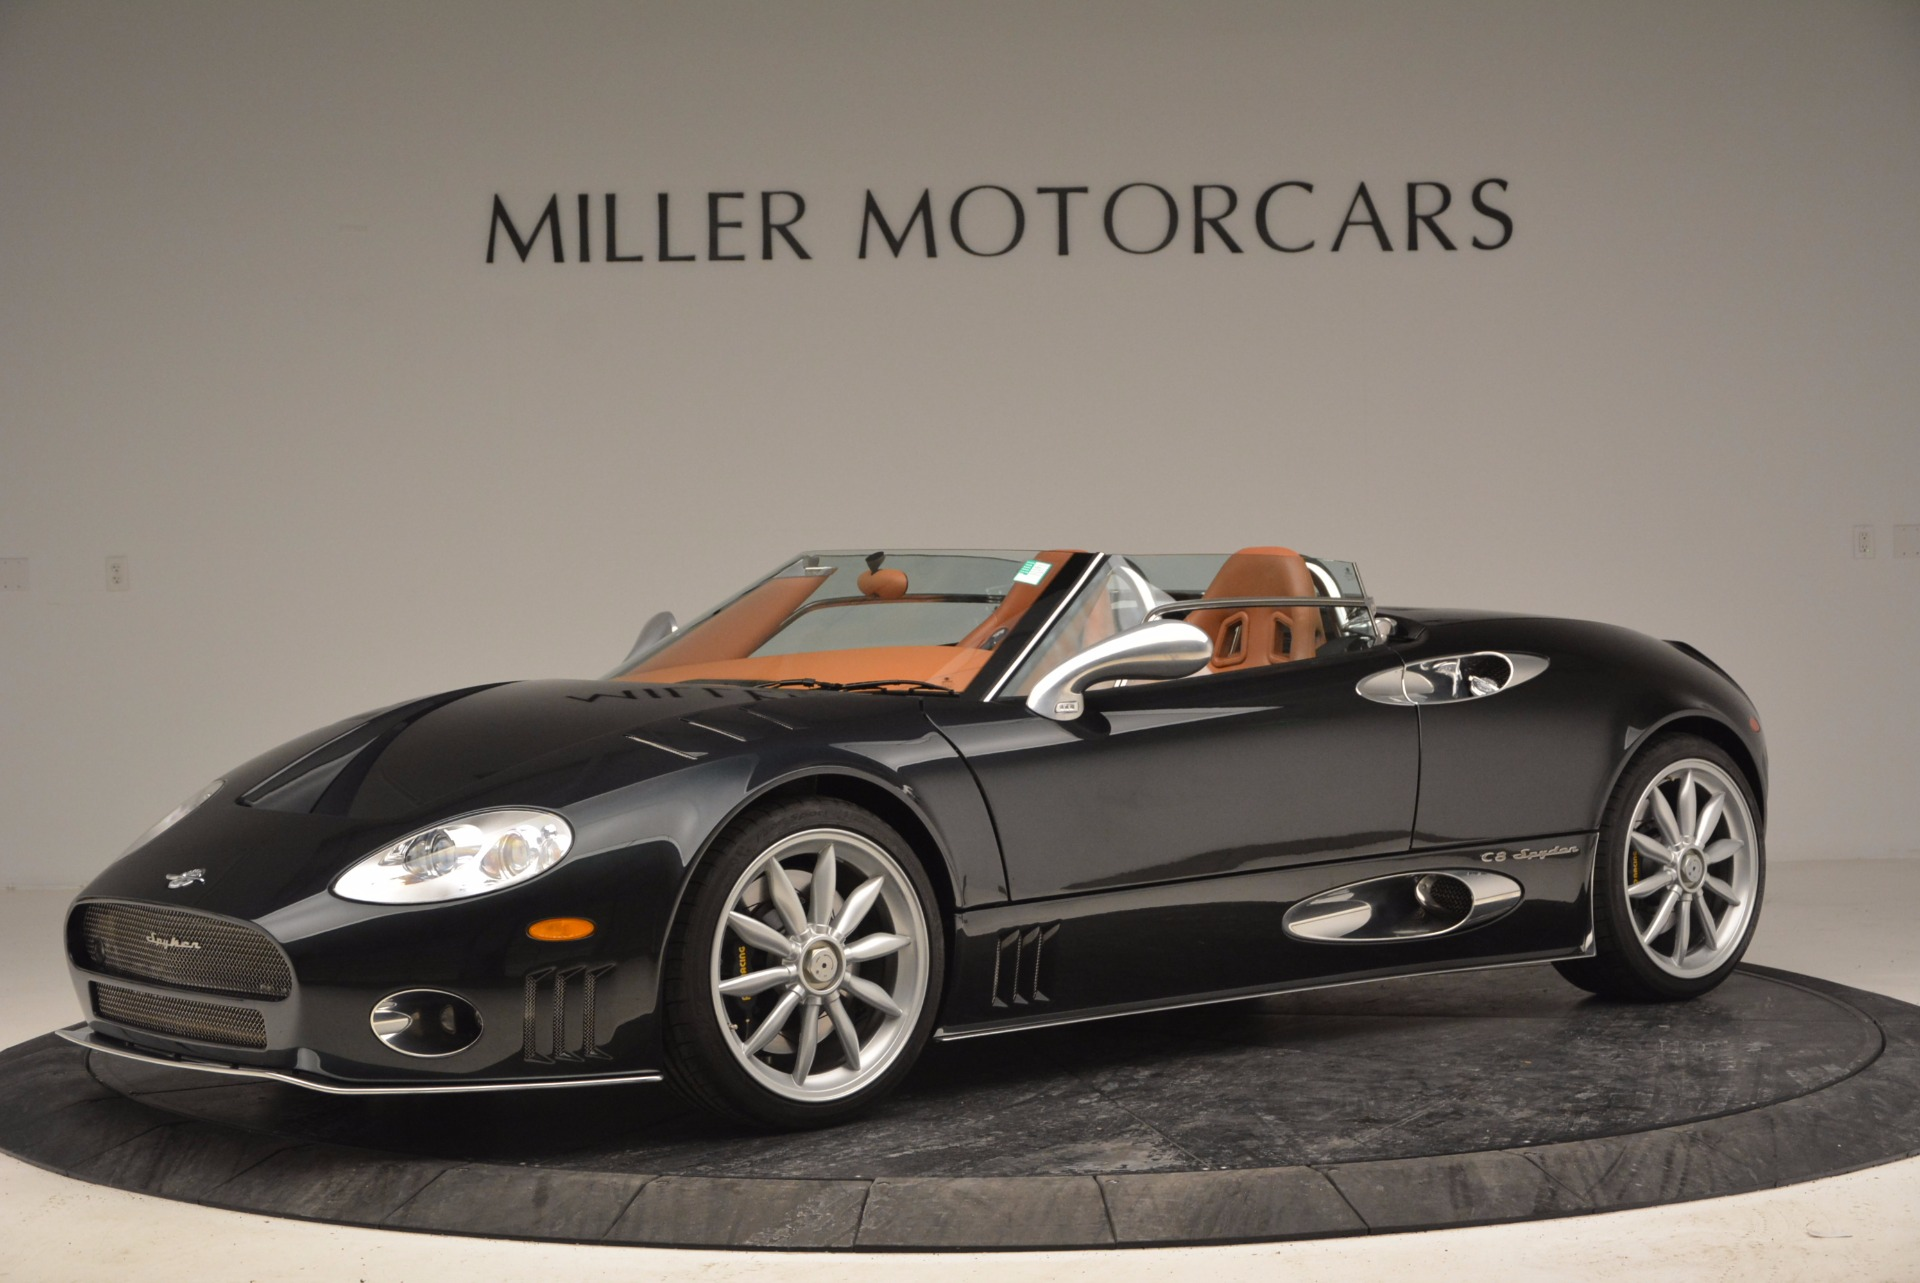 Used 2006 Spyker C8 Spyder  For Sale In Greenwich, CT 1007_p4